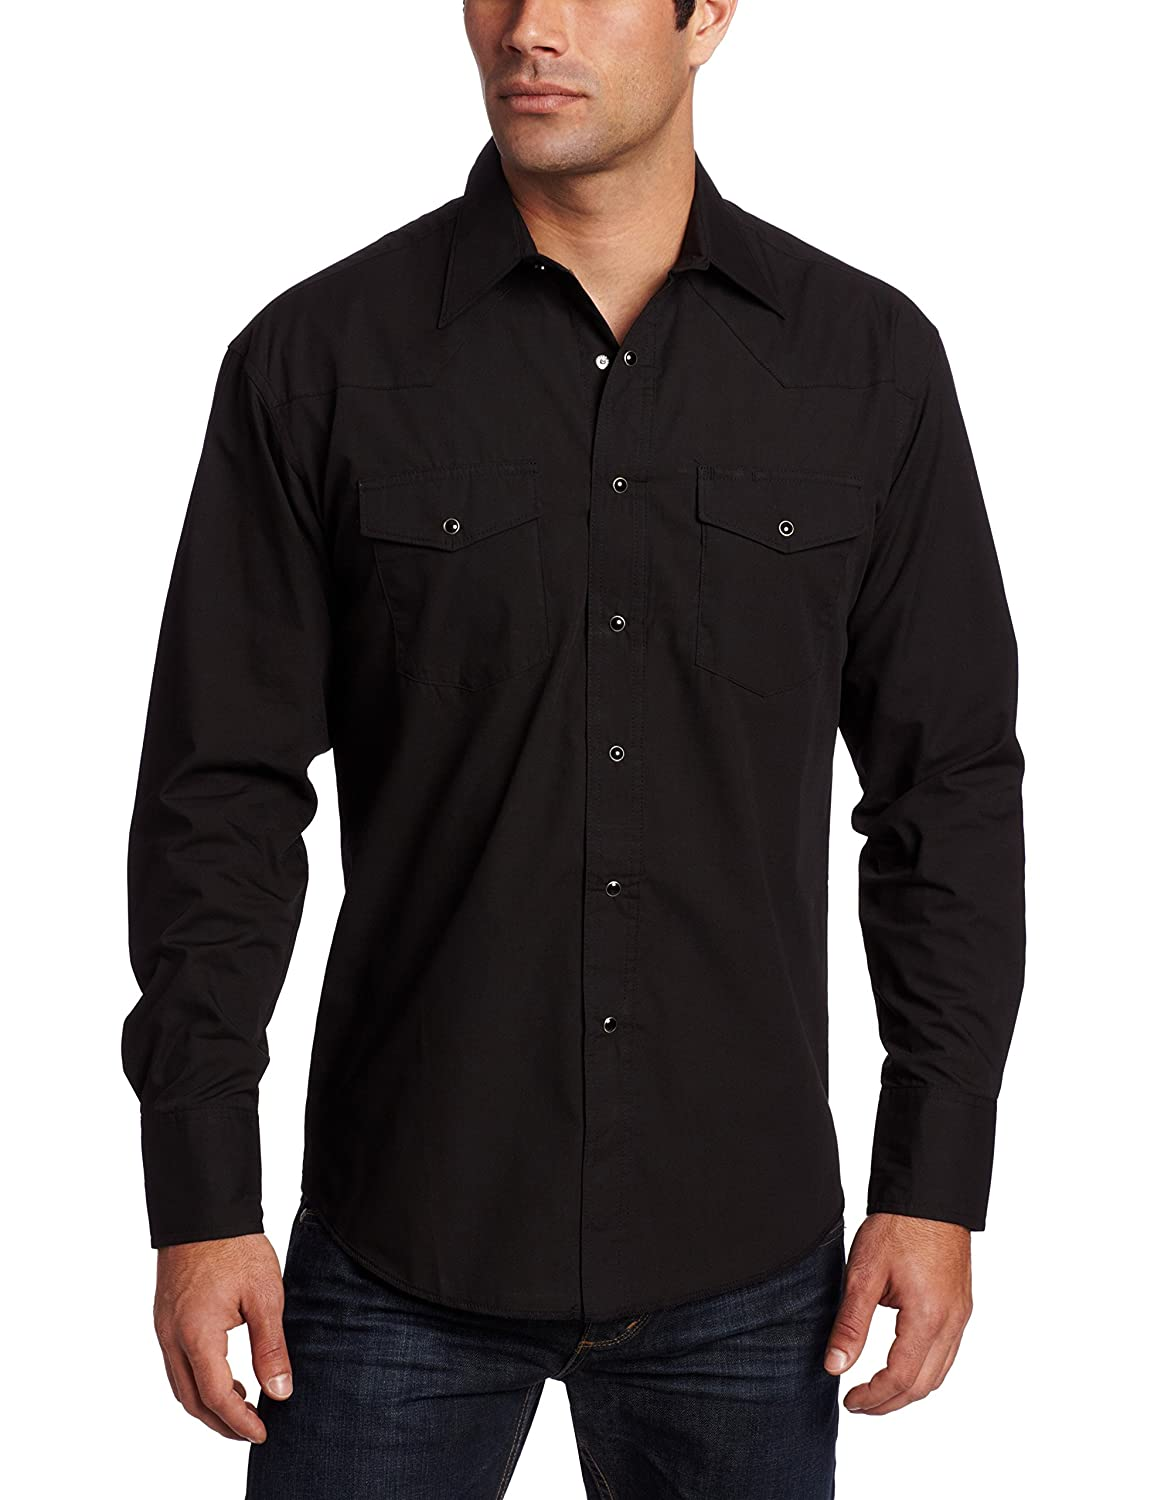 Mens Black Long Sleeve Shirt Artee Shirt